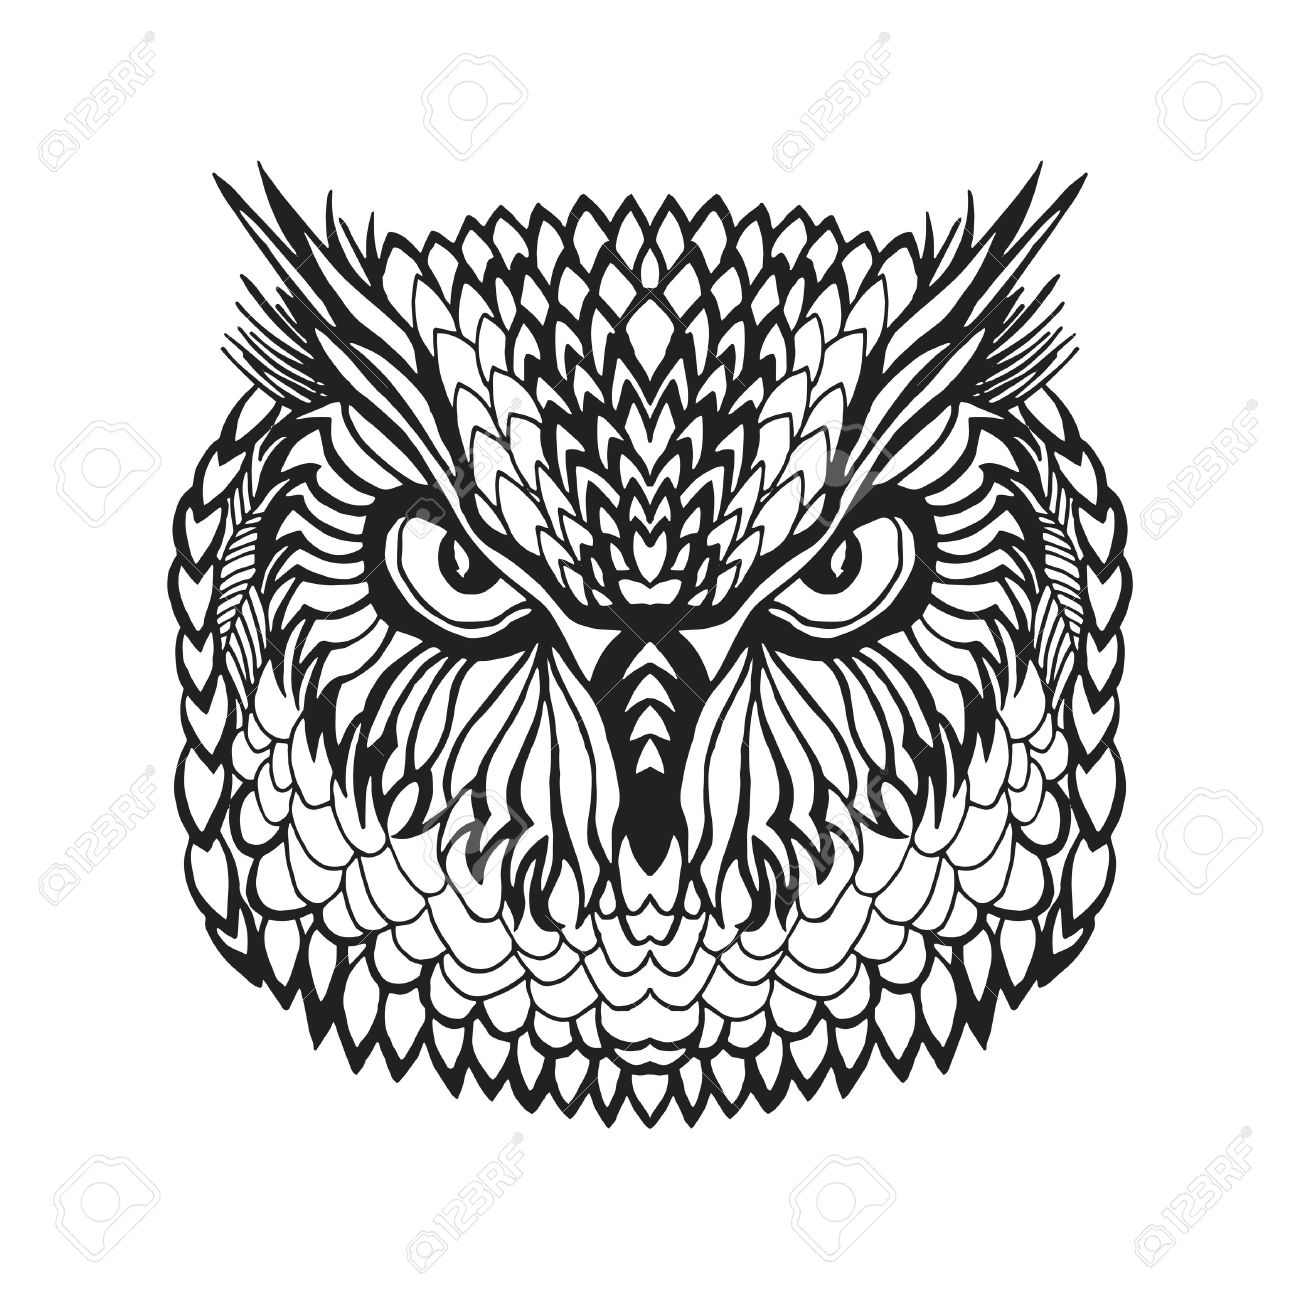 1300x1300 Zentangle Stylized Eagle Owl Head. Animals. Black White Hand Drawn